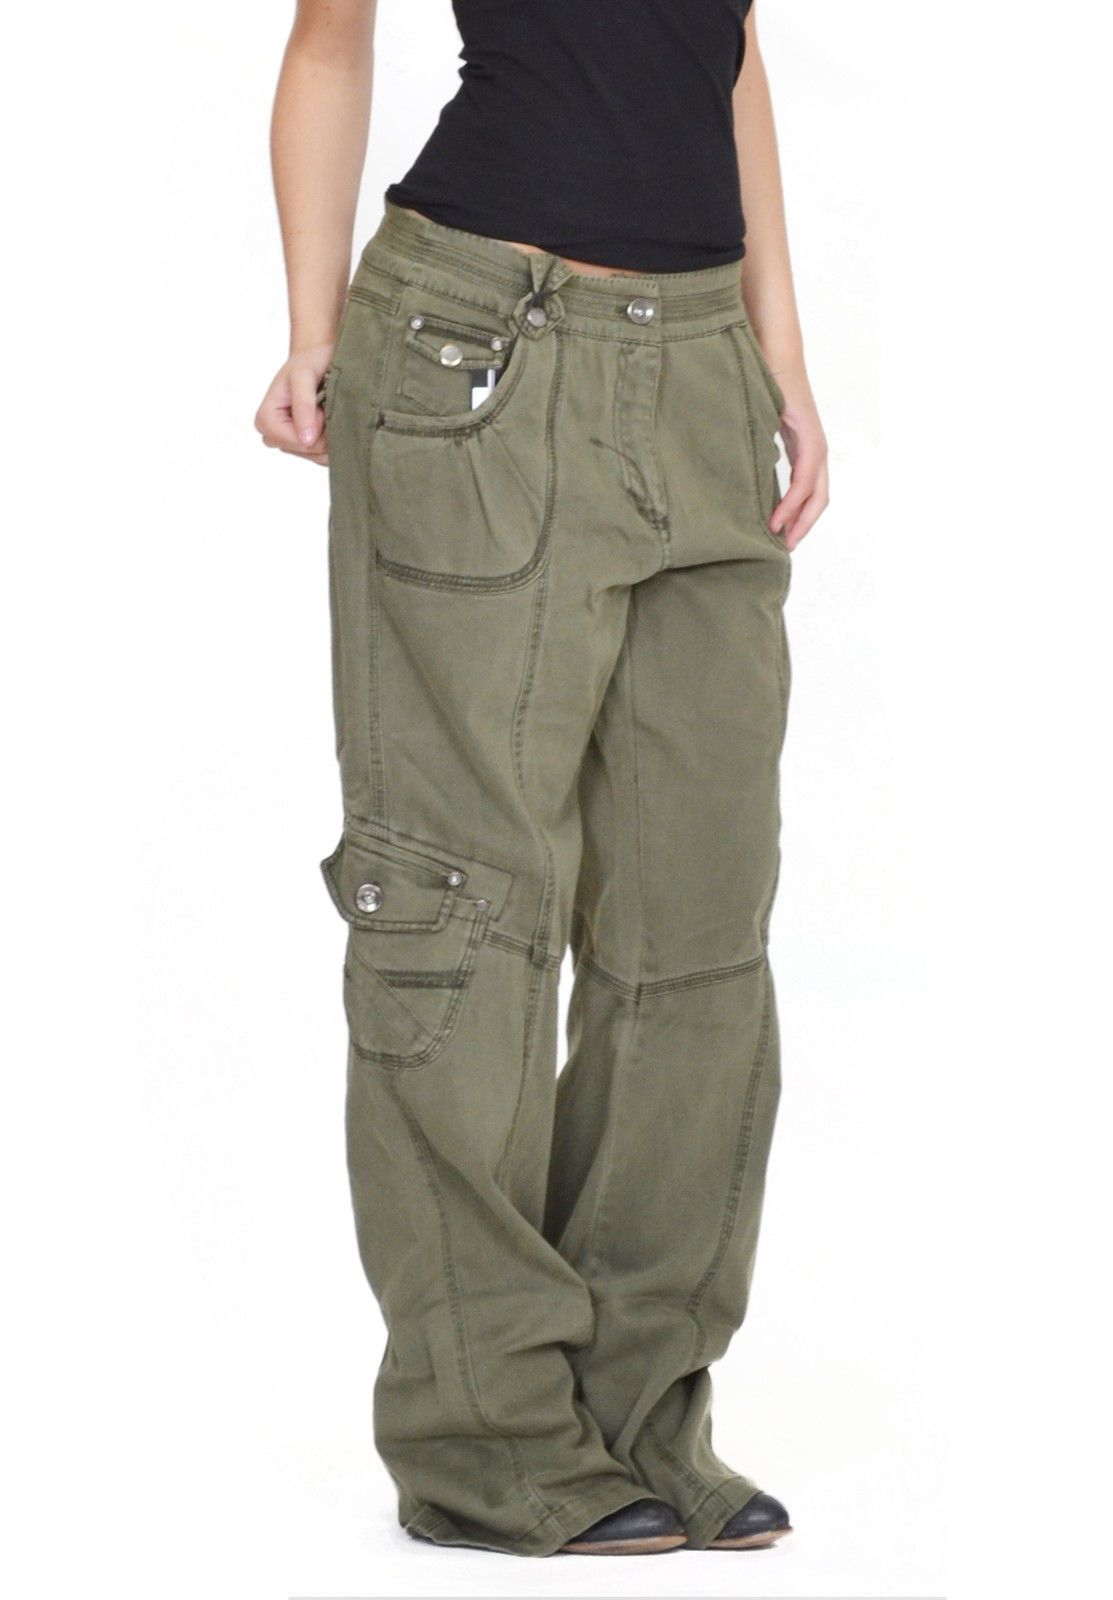 Womens Army Green Baggy Loose Cargo Pants Wide Boyfriend Combat Trousers  Jeans 5da5ab187